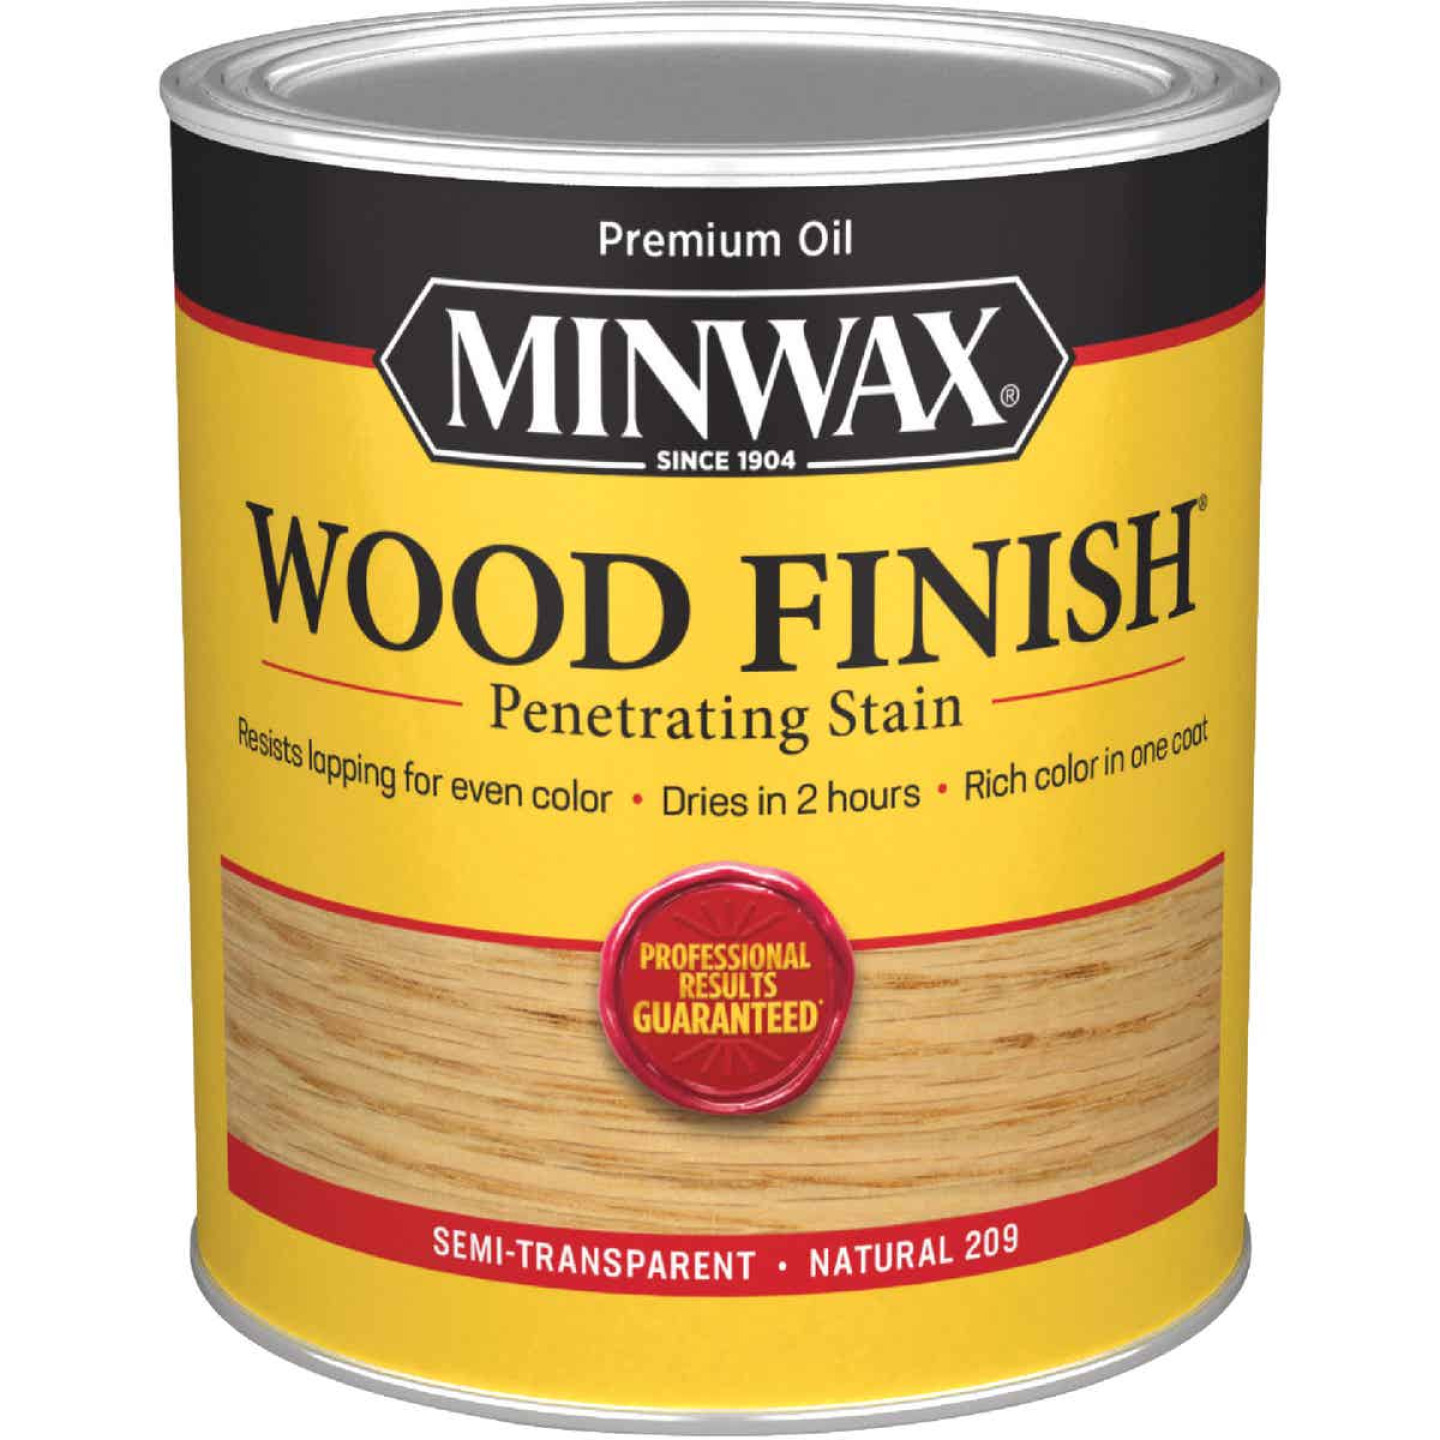 Minwax Wood Finish Penetrating Stain, Natural, 1 Qt. Image 1